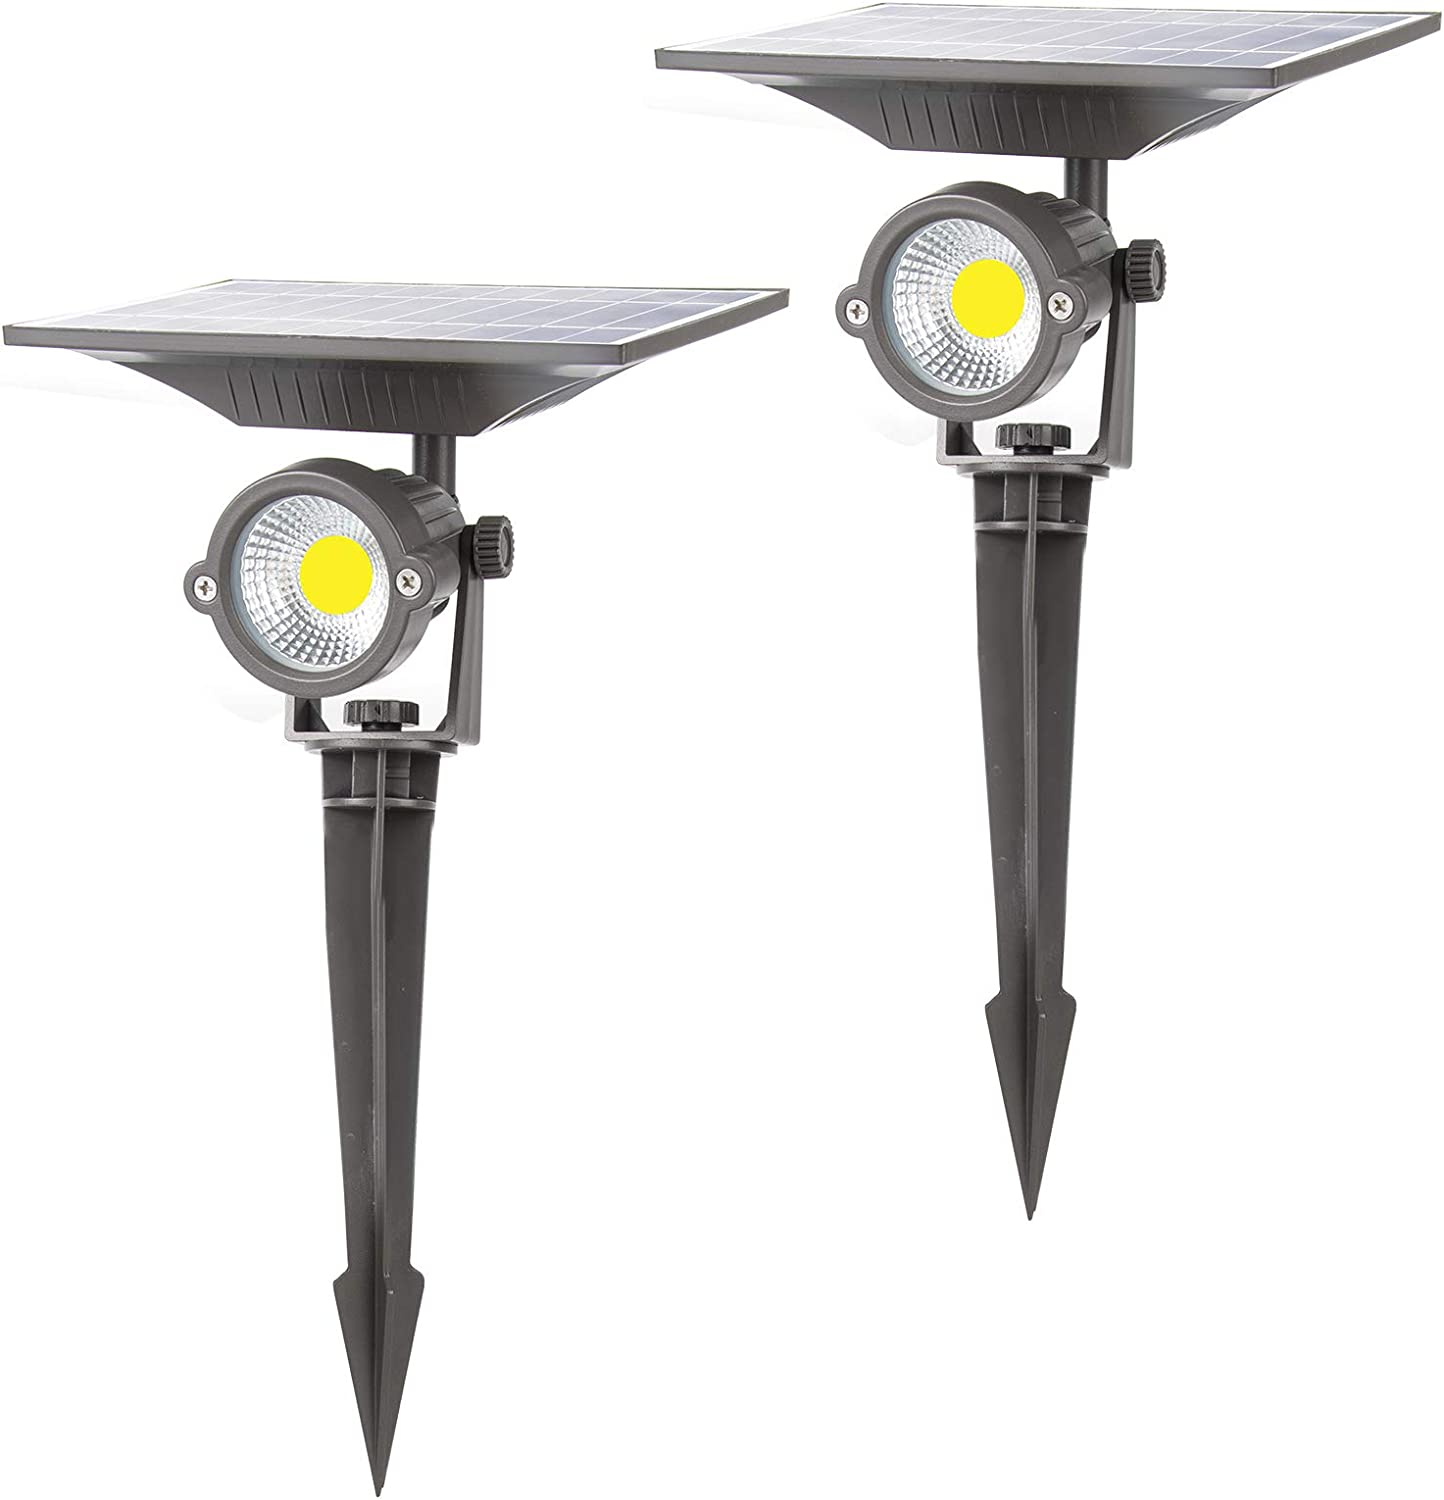 Lightdot Solar Lights Outdoor, Upgraded Waterproof Solar Powered Landscape Spotlights 2-in-1 Wall Light Decorative Lighting Auto On/Off for Pathway Garden Patio Yard Driveway Pool, 2 Pack: Home Improvement